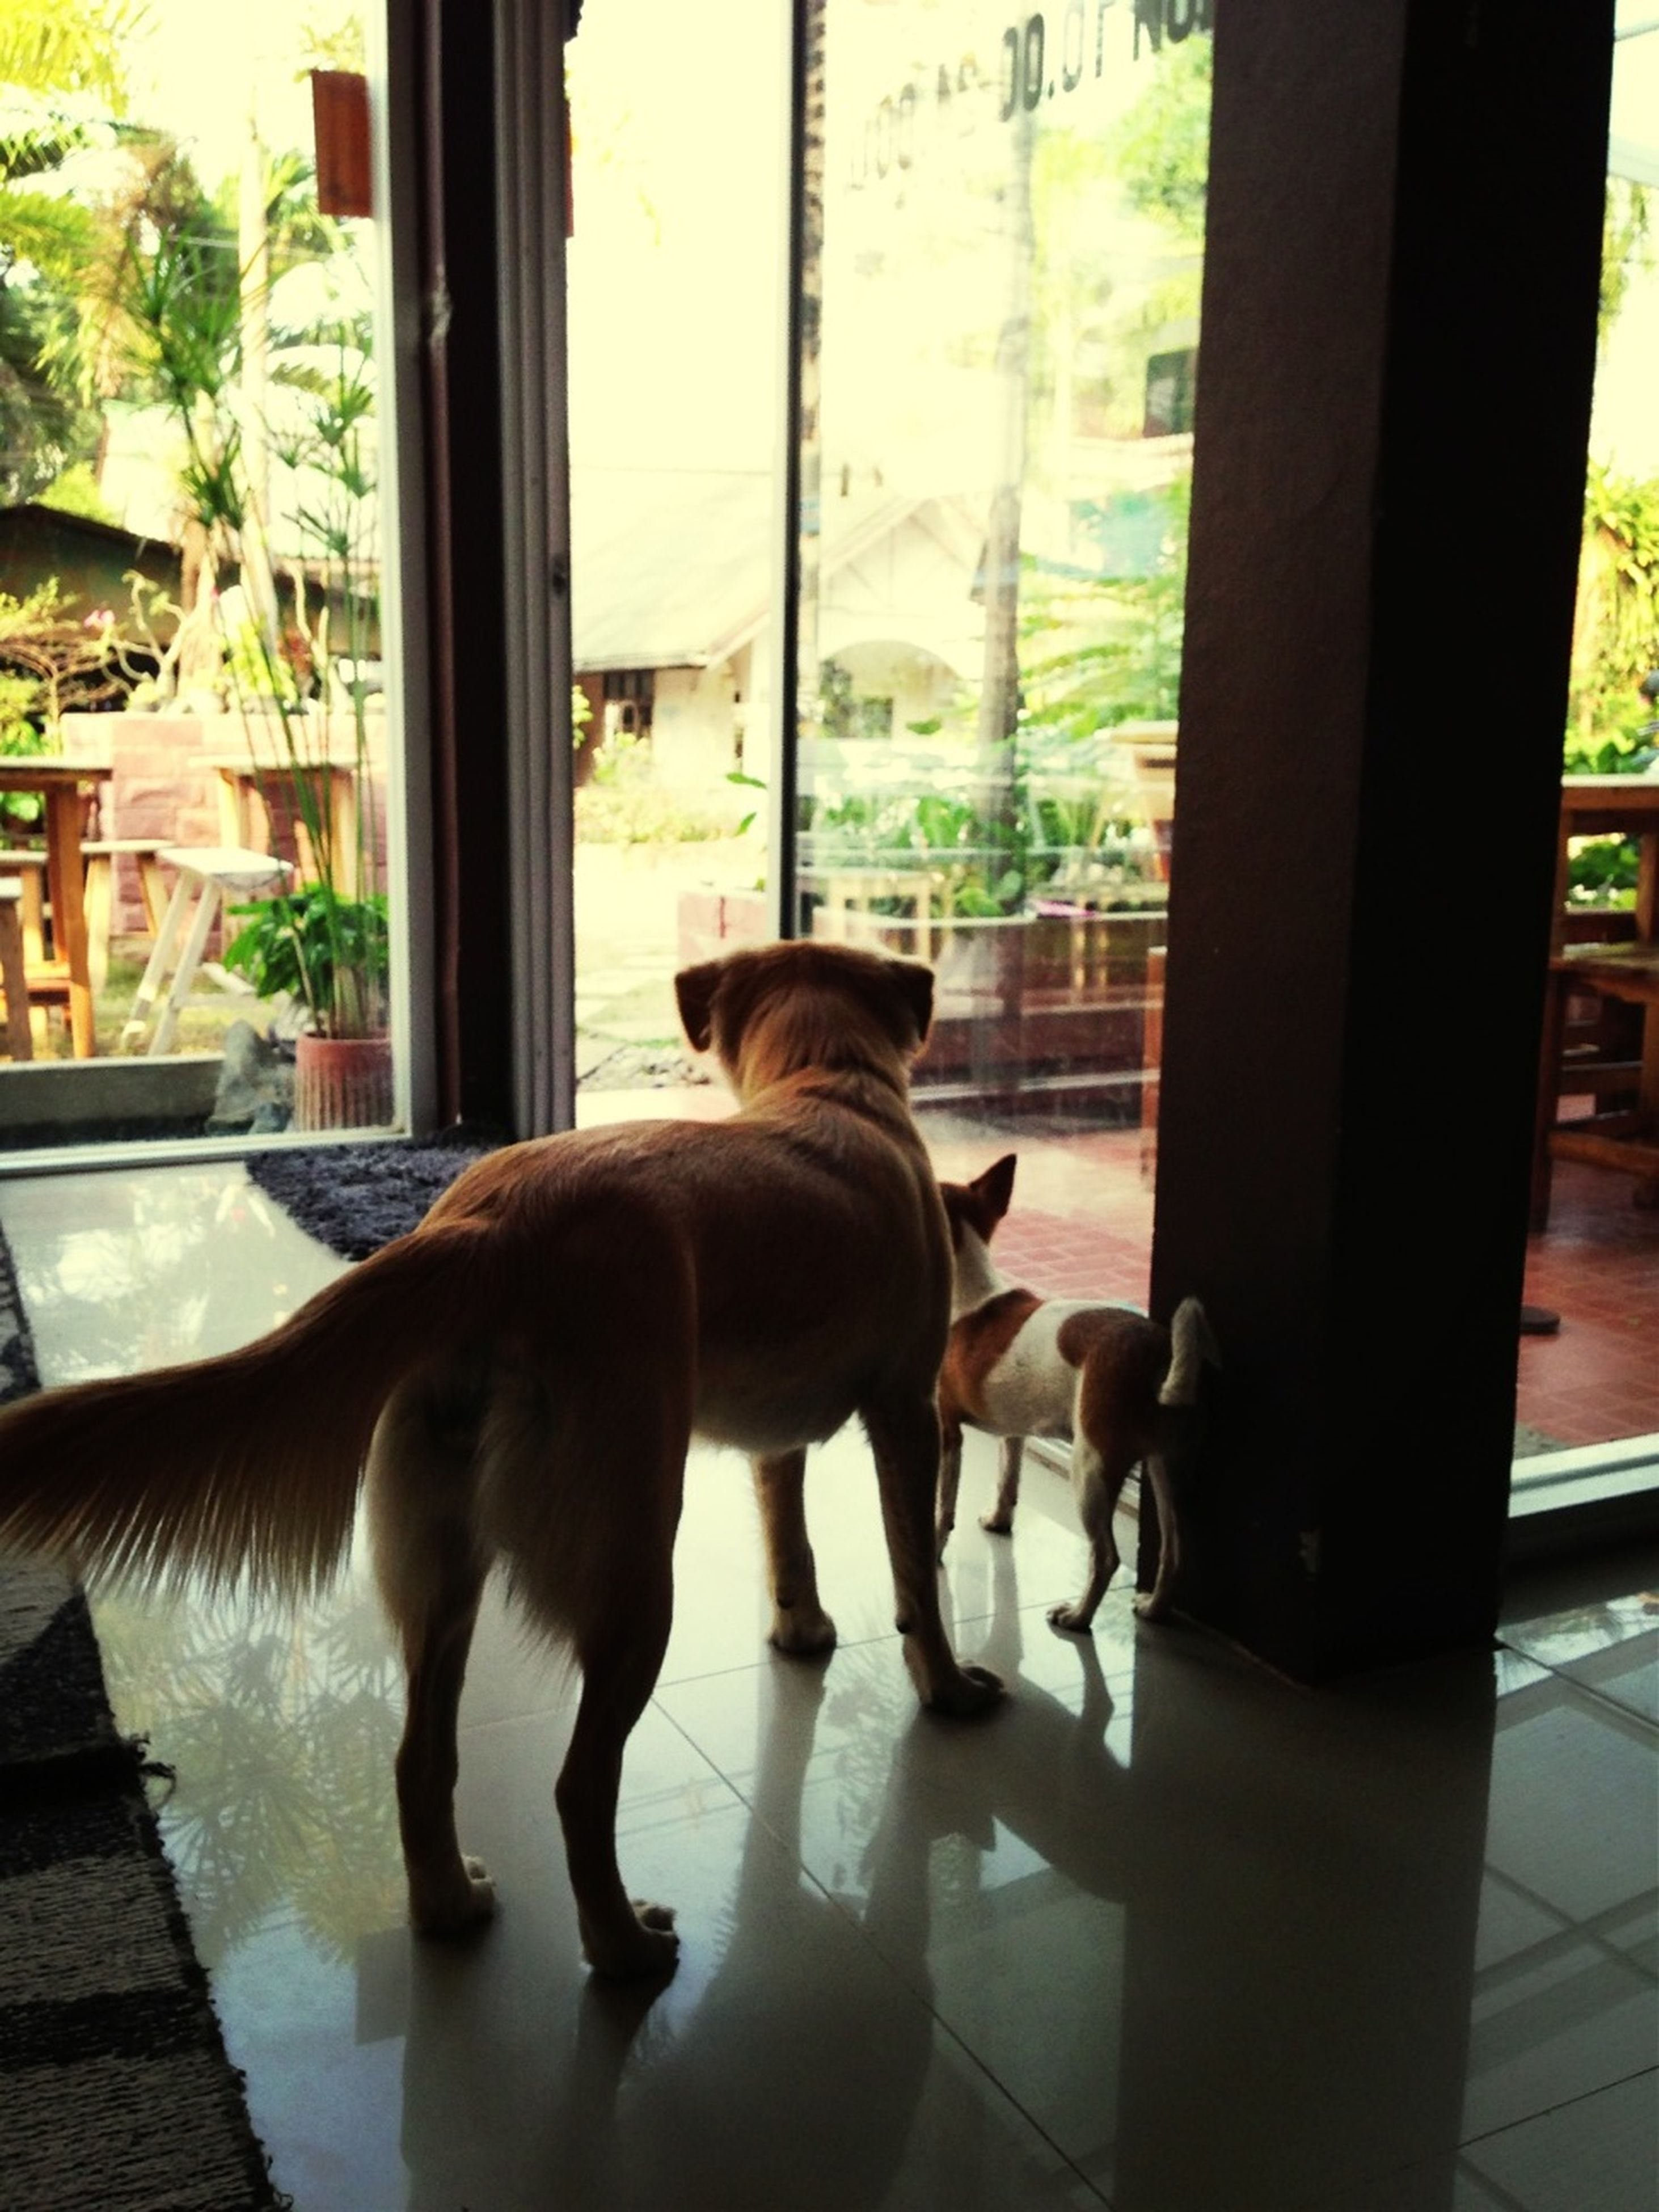 domestic animals, animal themes, indoors, pets, window, mammal, one animal, glass - material, transparent, window sill, dog, looking through window, home interior, table, reflection, sitting, domestic cat, full length, potted plant, day